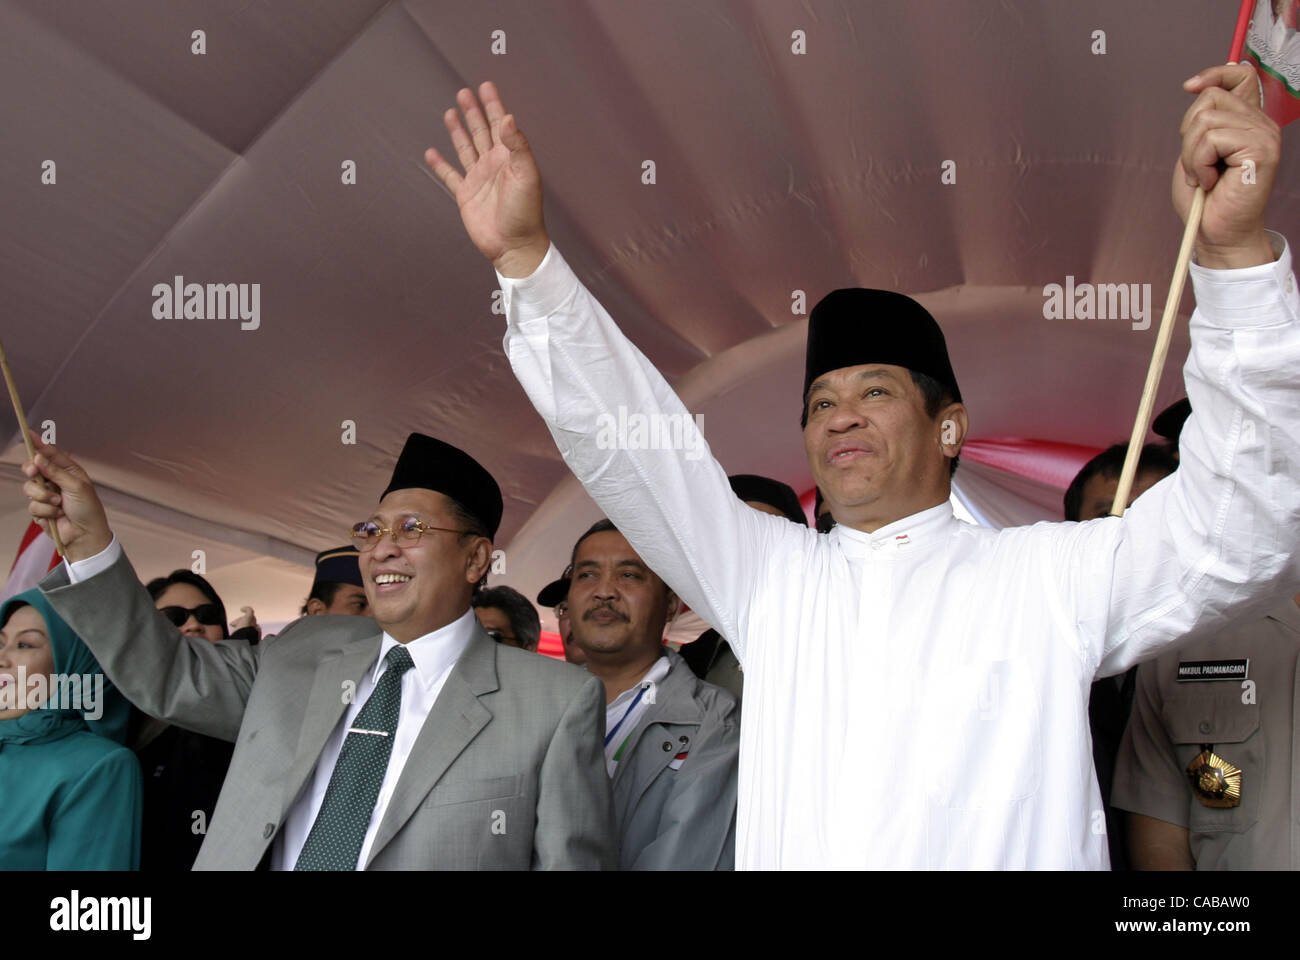 Indonesian Election Stock Photos & Indonesian Election Stock